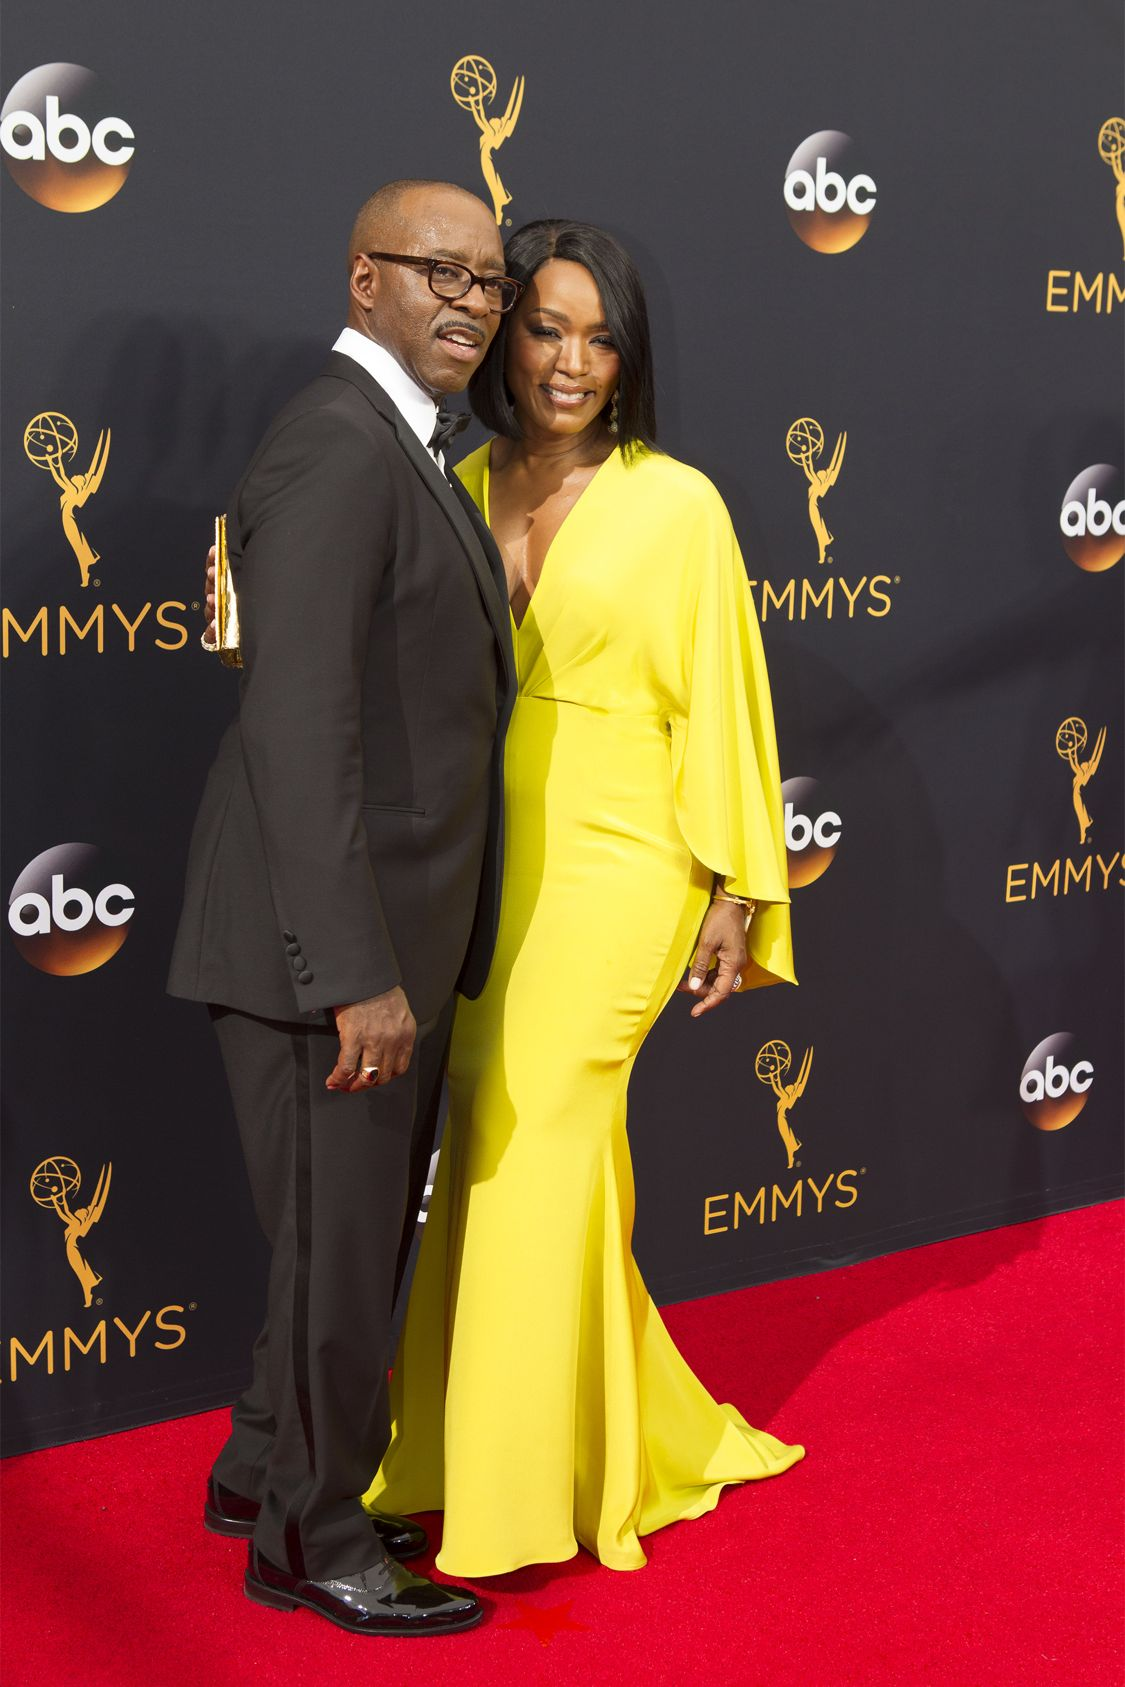 """THE 68TH EMMY(r) AWARDS - """"The 68th Emmy Awards"""" broadcasts live from The Microsoft Theater in Los Angeles, Sunday, September 18 (7:00-11:00 p.m. EDT/4:00-8:00 p.m. PDT), on ABC and is hosted by Jimmy Kimmel. (ABC/Rick Rowell) COURTNY B. VANCE, ANGELA BASSETT"""